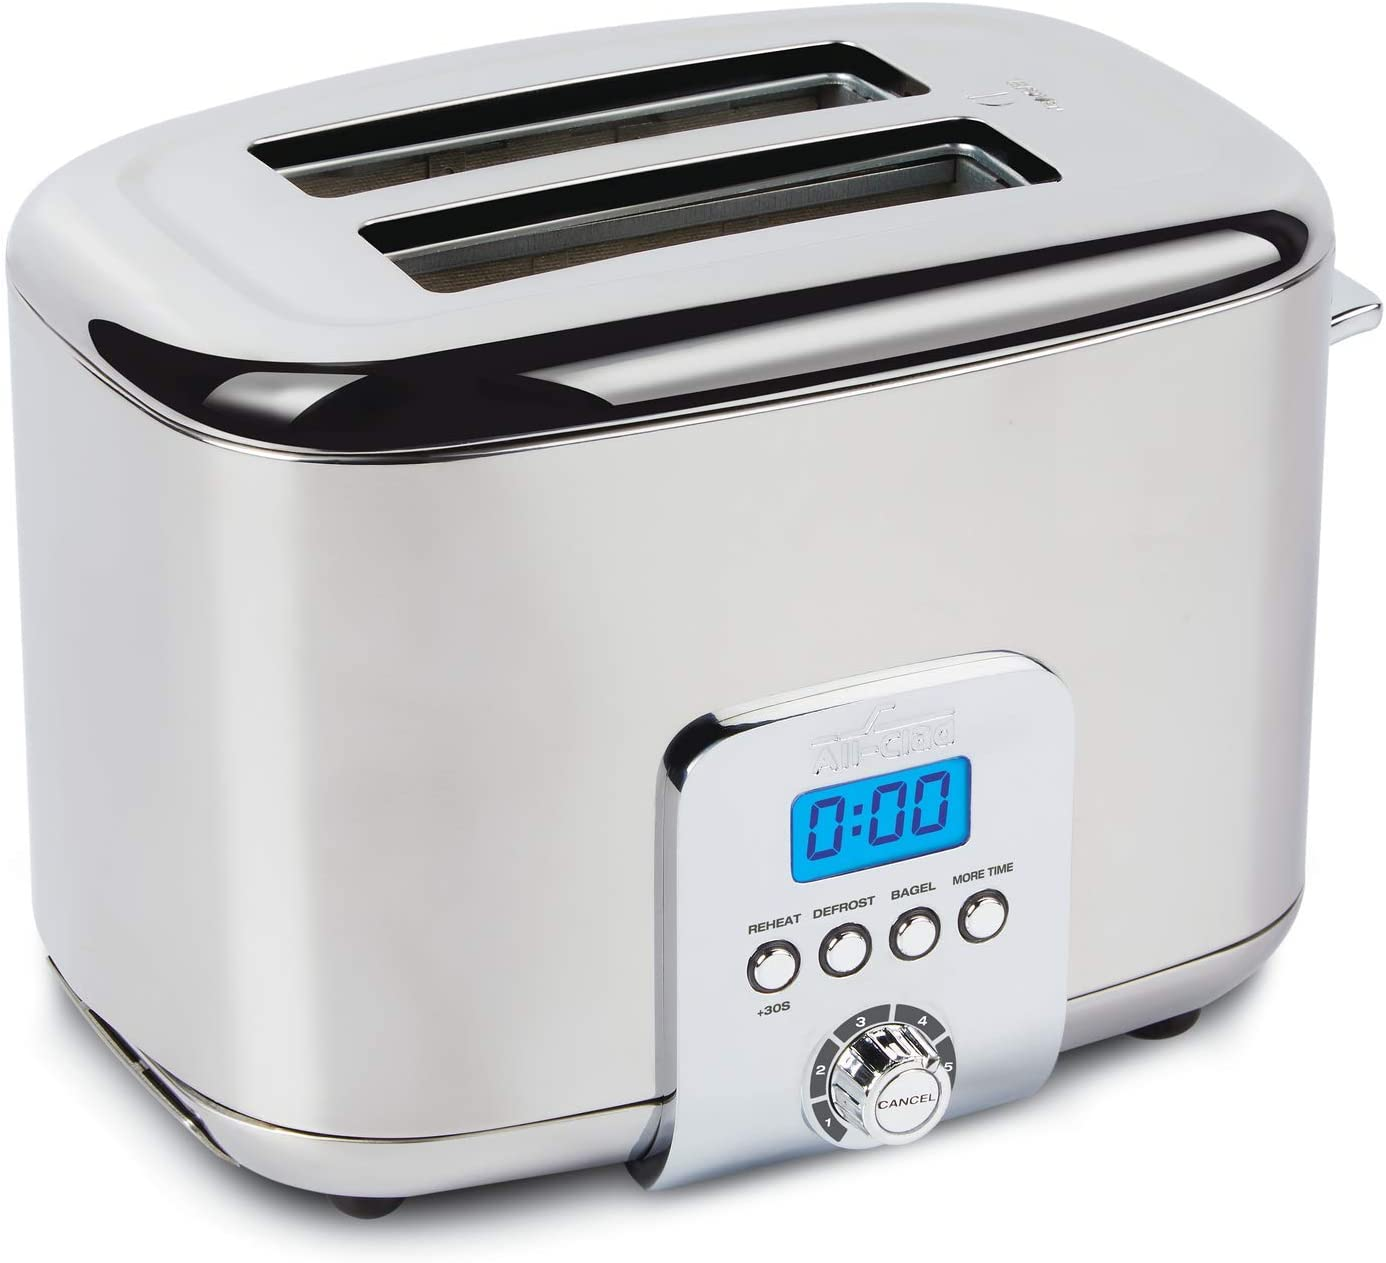 All-Clad TJ822D51 Stainless Steel Digital Toaster with Extra Wide Slot, 2-Slice, Silver